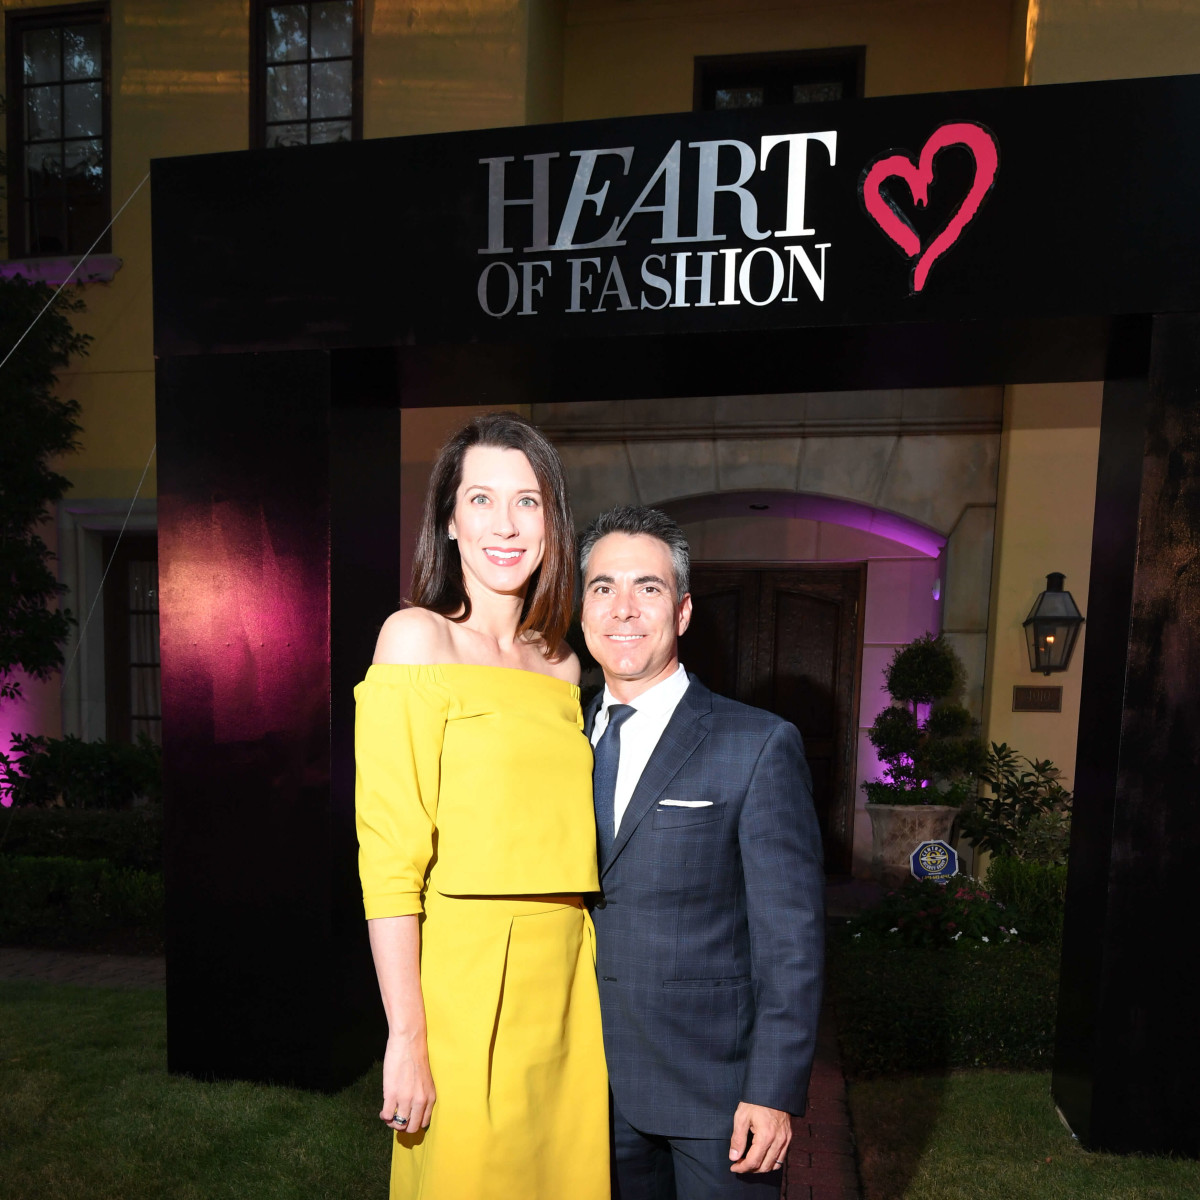 Heart of Fashion Laura Jones, Steve Jones